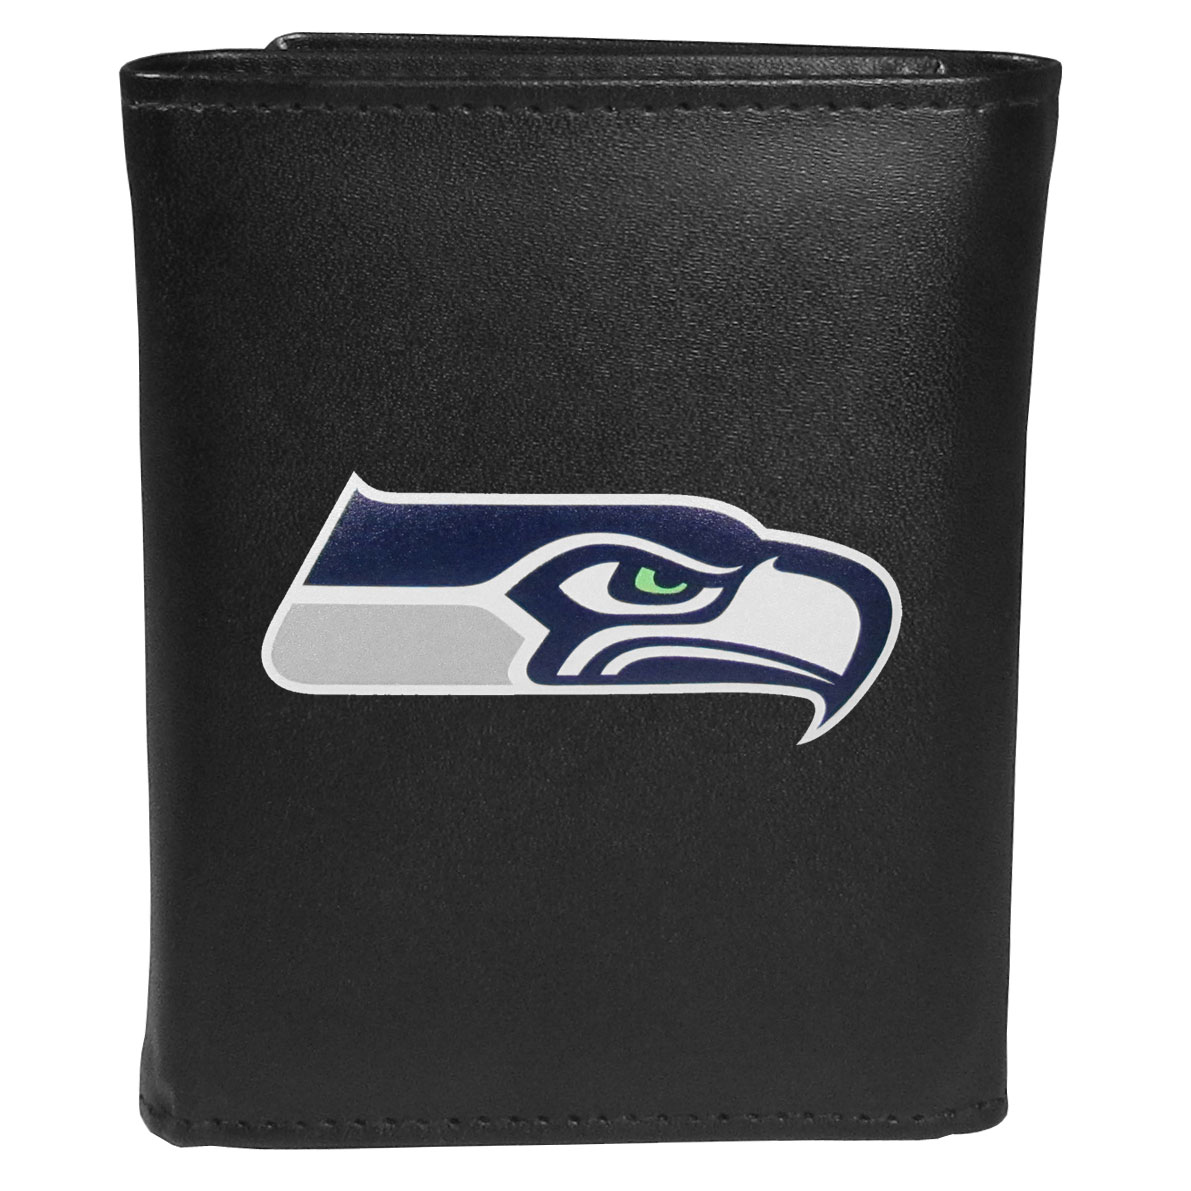 Seattle Seahawks Tri-fold Wallet Large Logo - Sports fans do not have to sacrifice style with this classic tri-fold wallet that sports theSeattle Seahawks?extra large logo. This men's fashion accessory has a leather grain look and expert craftmanship for a quality wallet at a great price. The wallet features inner credit card slots, windowed ID slot and a large billfold pocket. The front of the wallet features an extra large printed team logo.